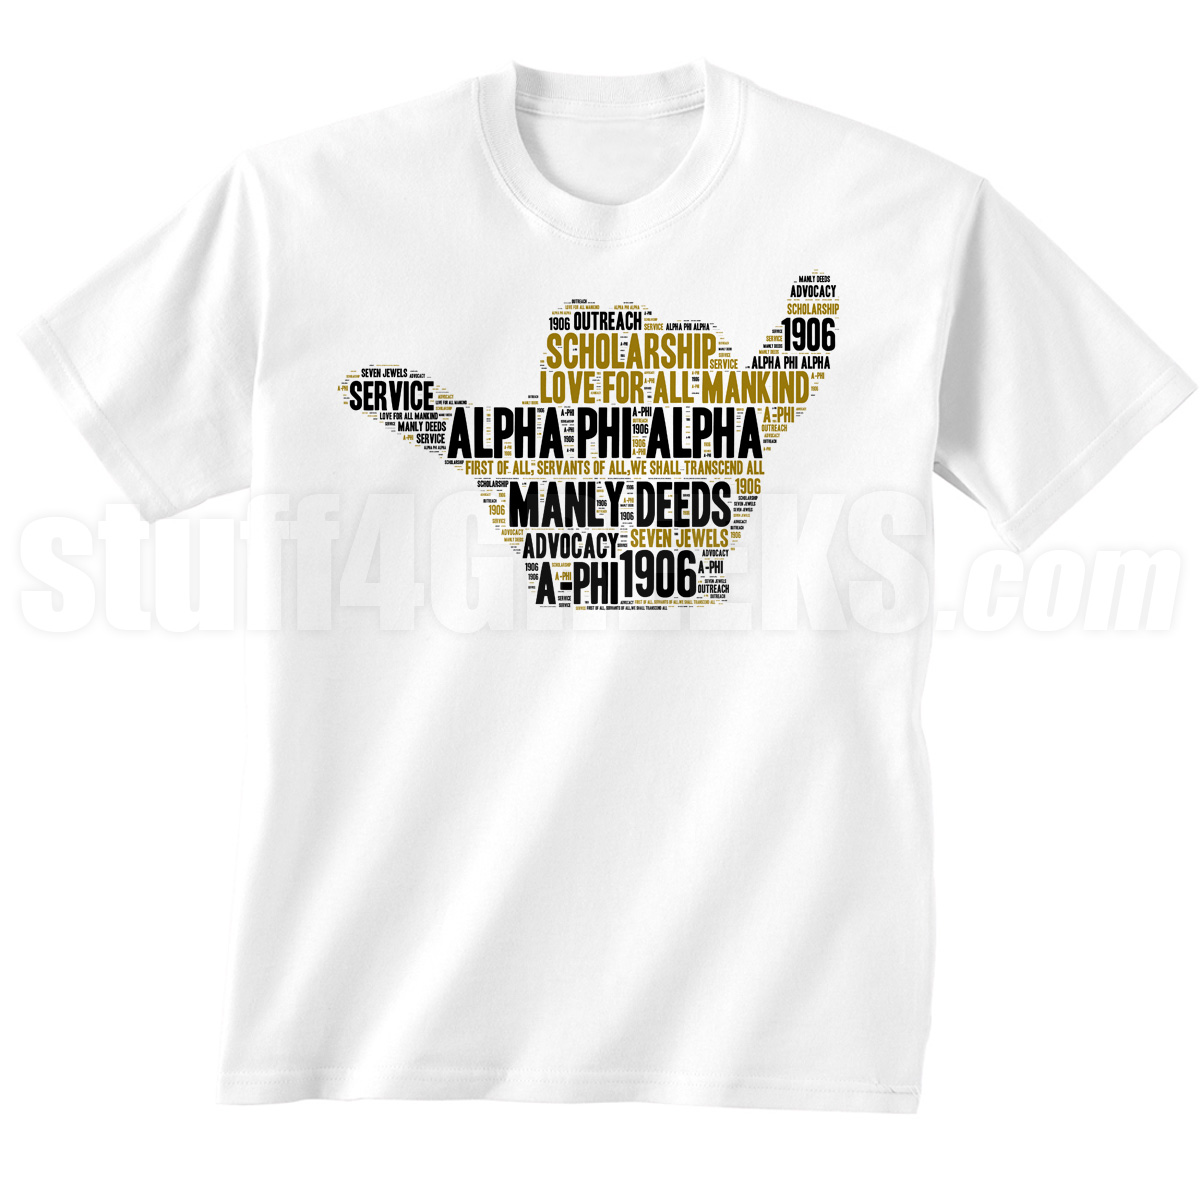 Alpha Phi Alpha Hand Sign Screen Printed T-Shirt, White - Designs by ...